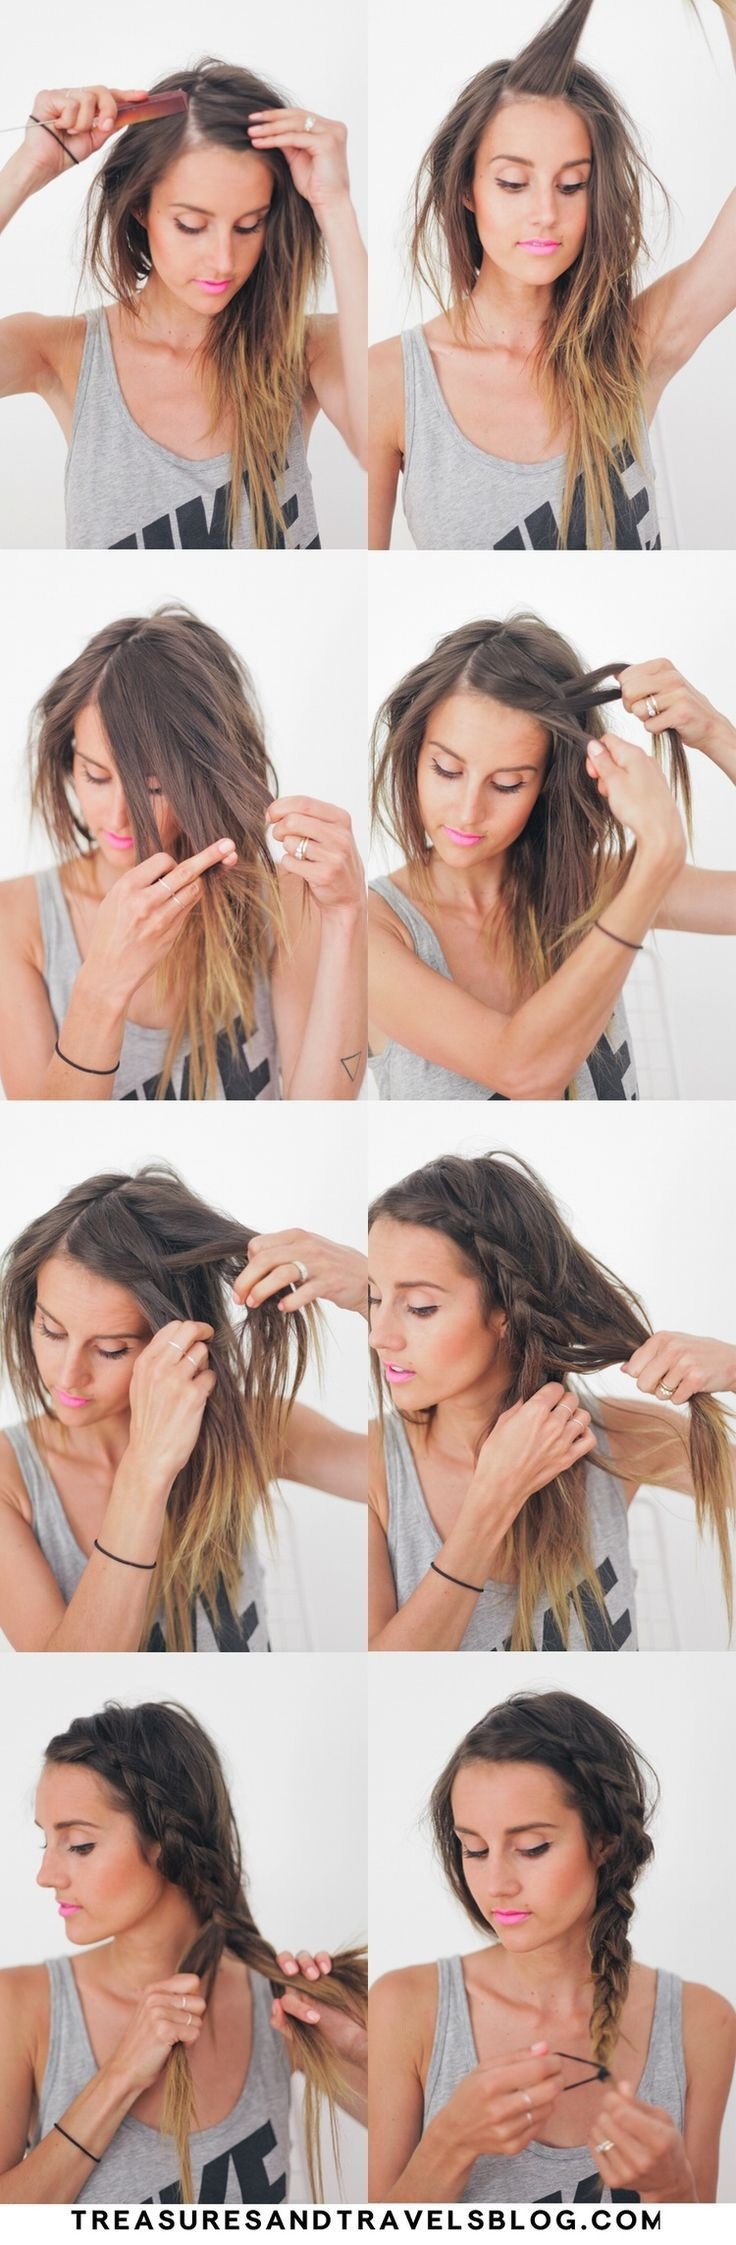 Pinterest Hair Tutorials You Need to Try - Page 5 of 19 11 Pinterest Hair Tutorials You Need to Try:11 Pinterest Hair Tutorials You Need to Try: